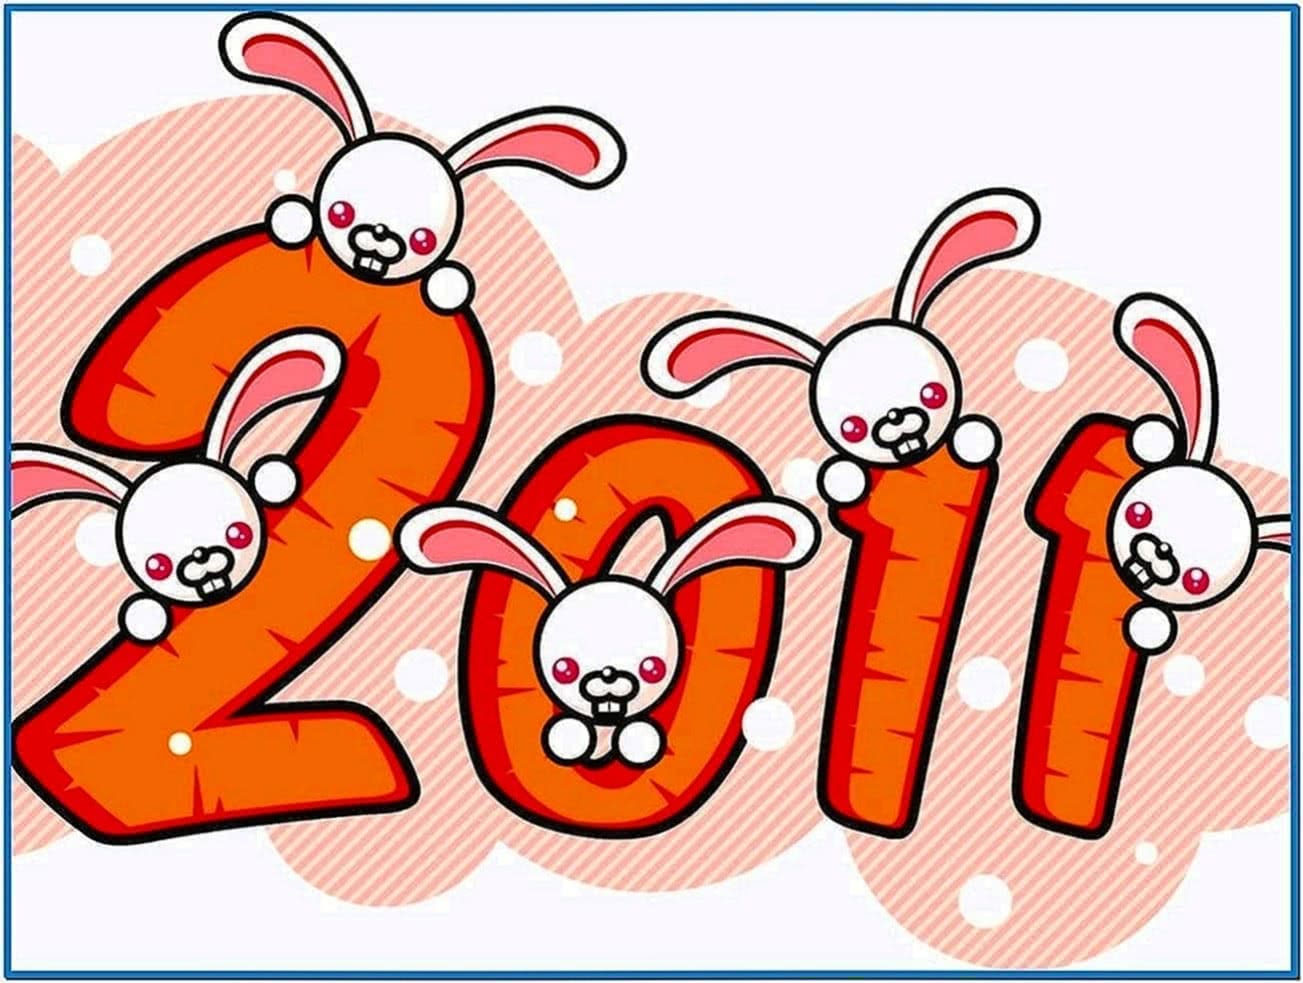 Screensaver Year of The Rabbit